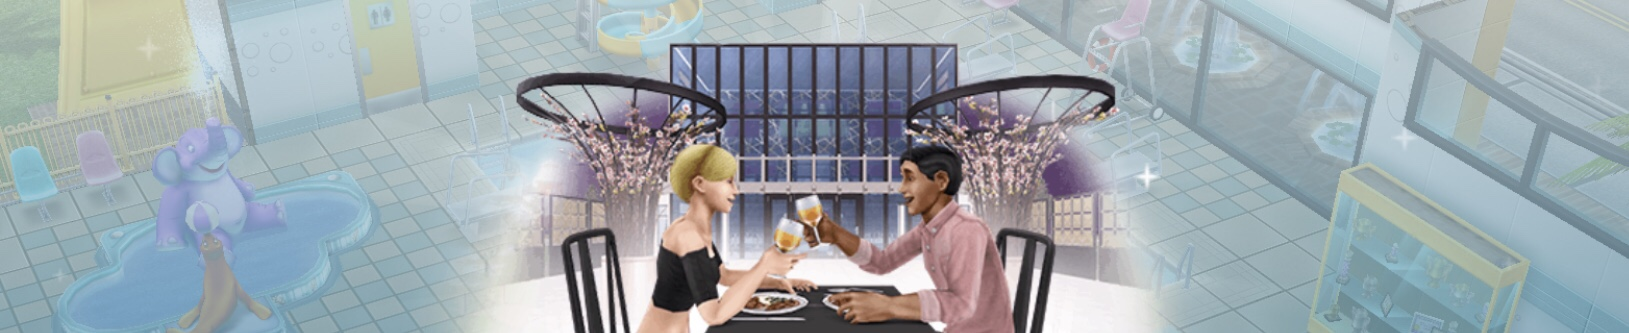 Sims FreePlay - Fine Dining Live Event